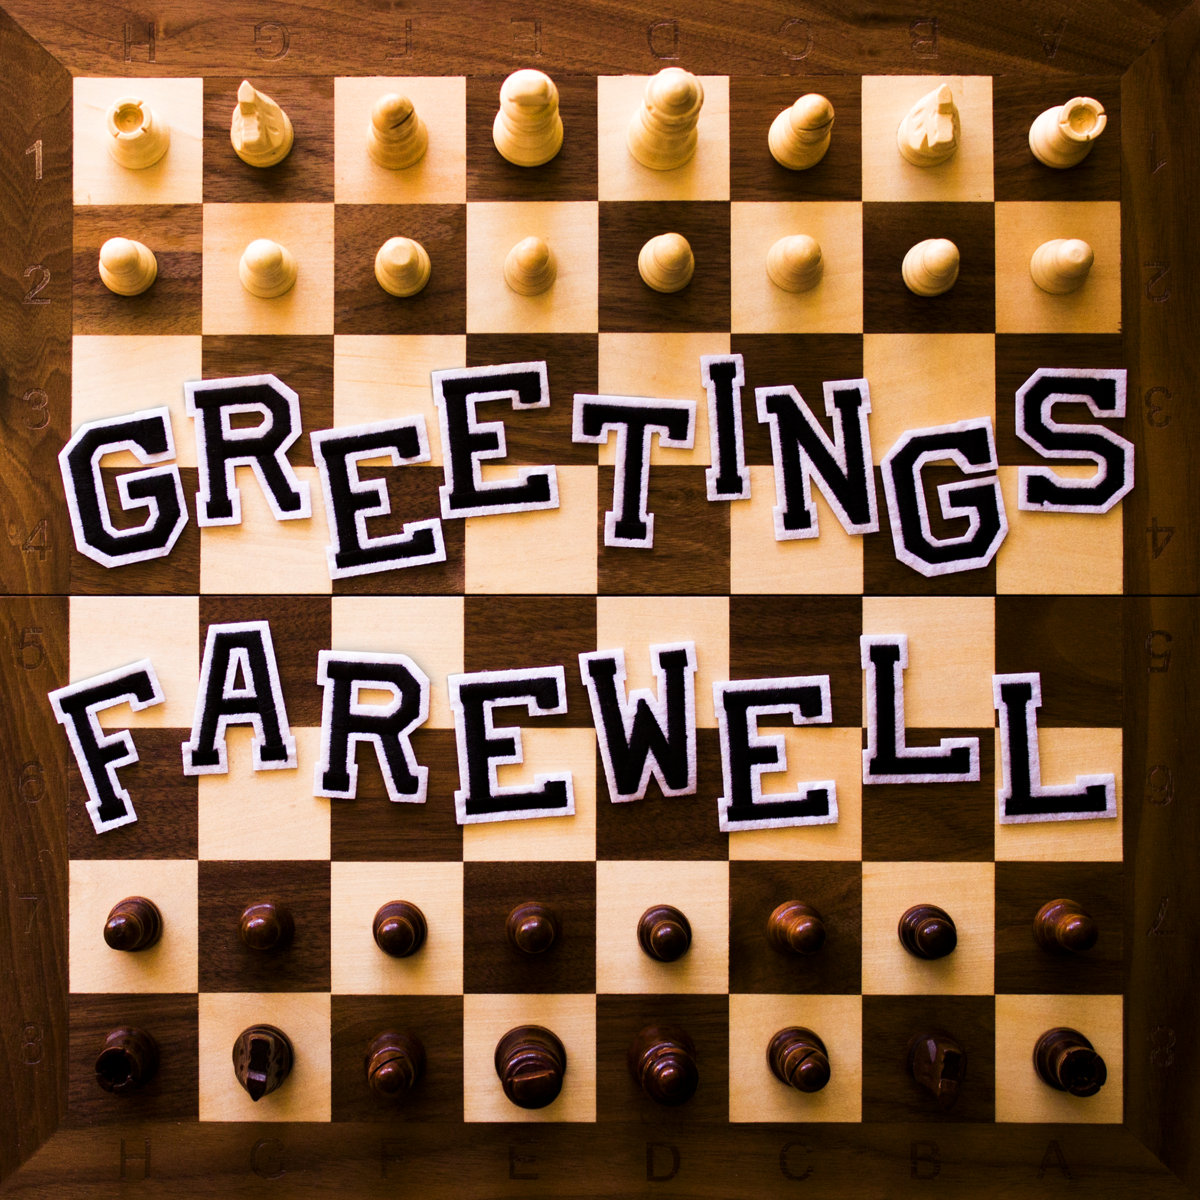 Greetings farewell downright records greetings farewell kristyandbryce Choice Image